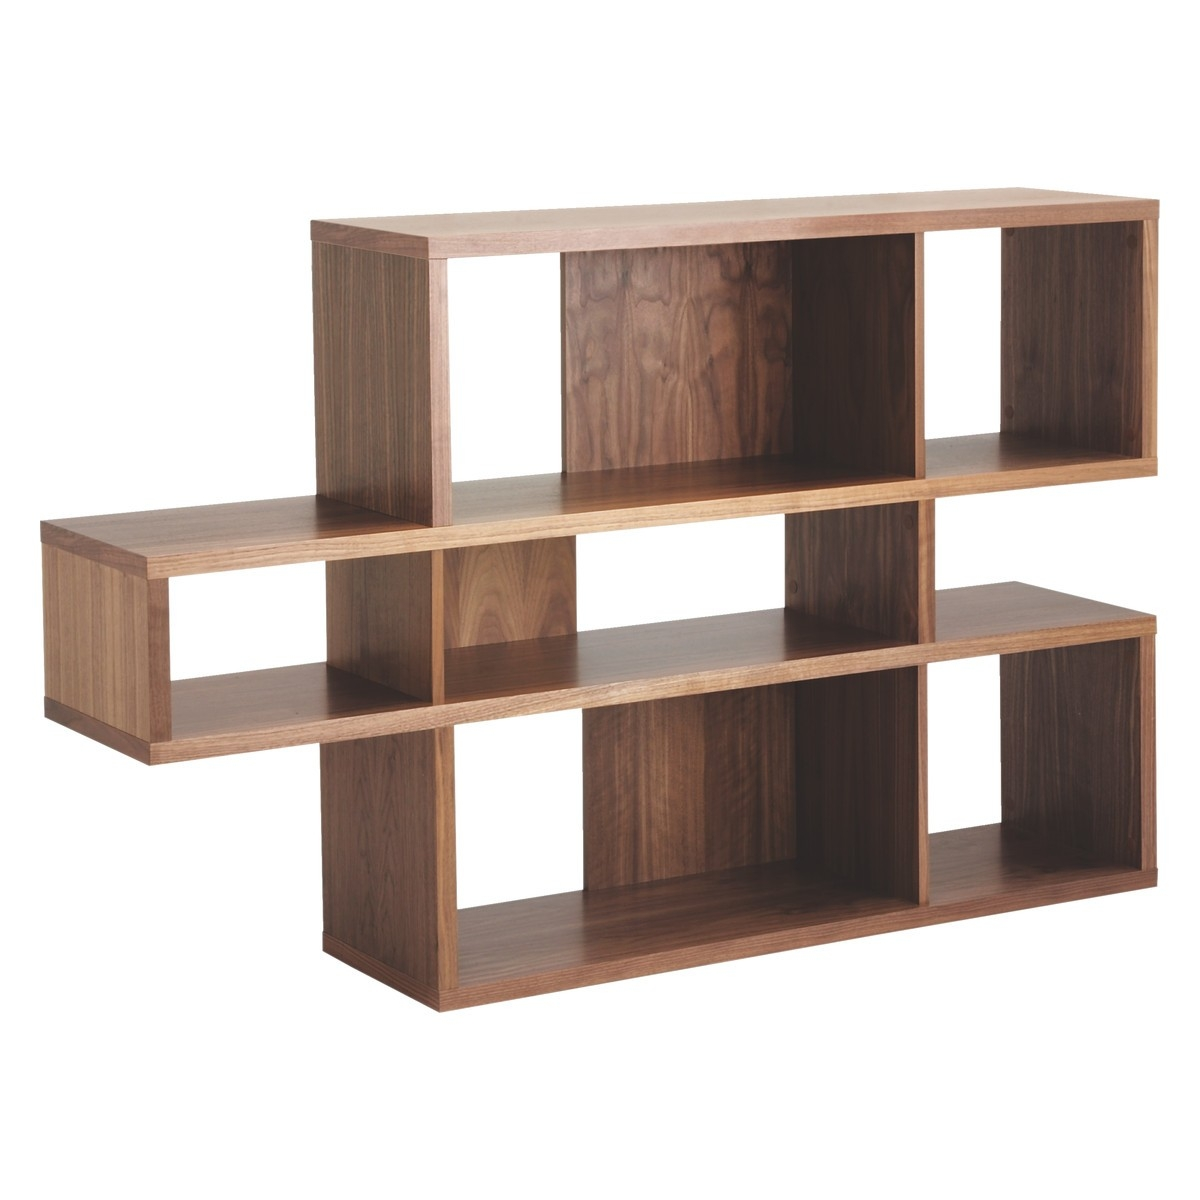 Wood Shelving Units Reclaimed Wood Unit With 3 Urban Look With Regarding Wooden Shelving Units (#13 of 15)